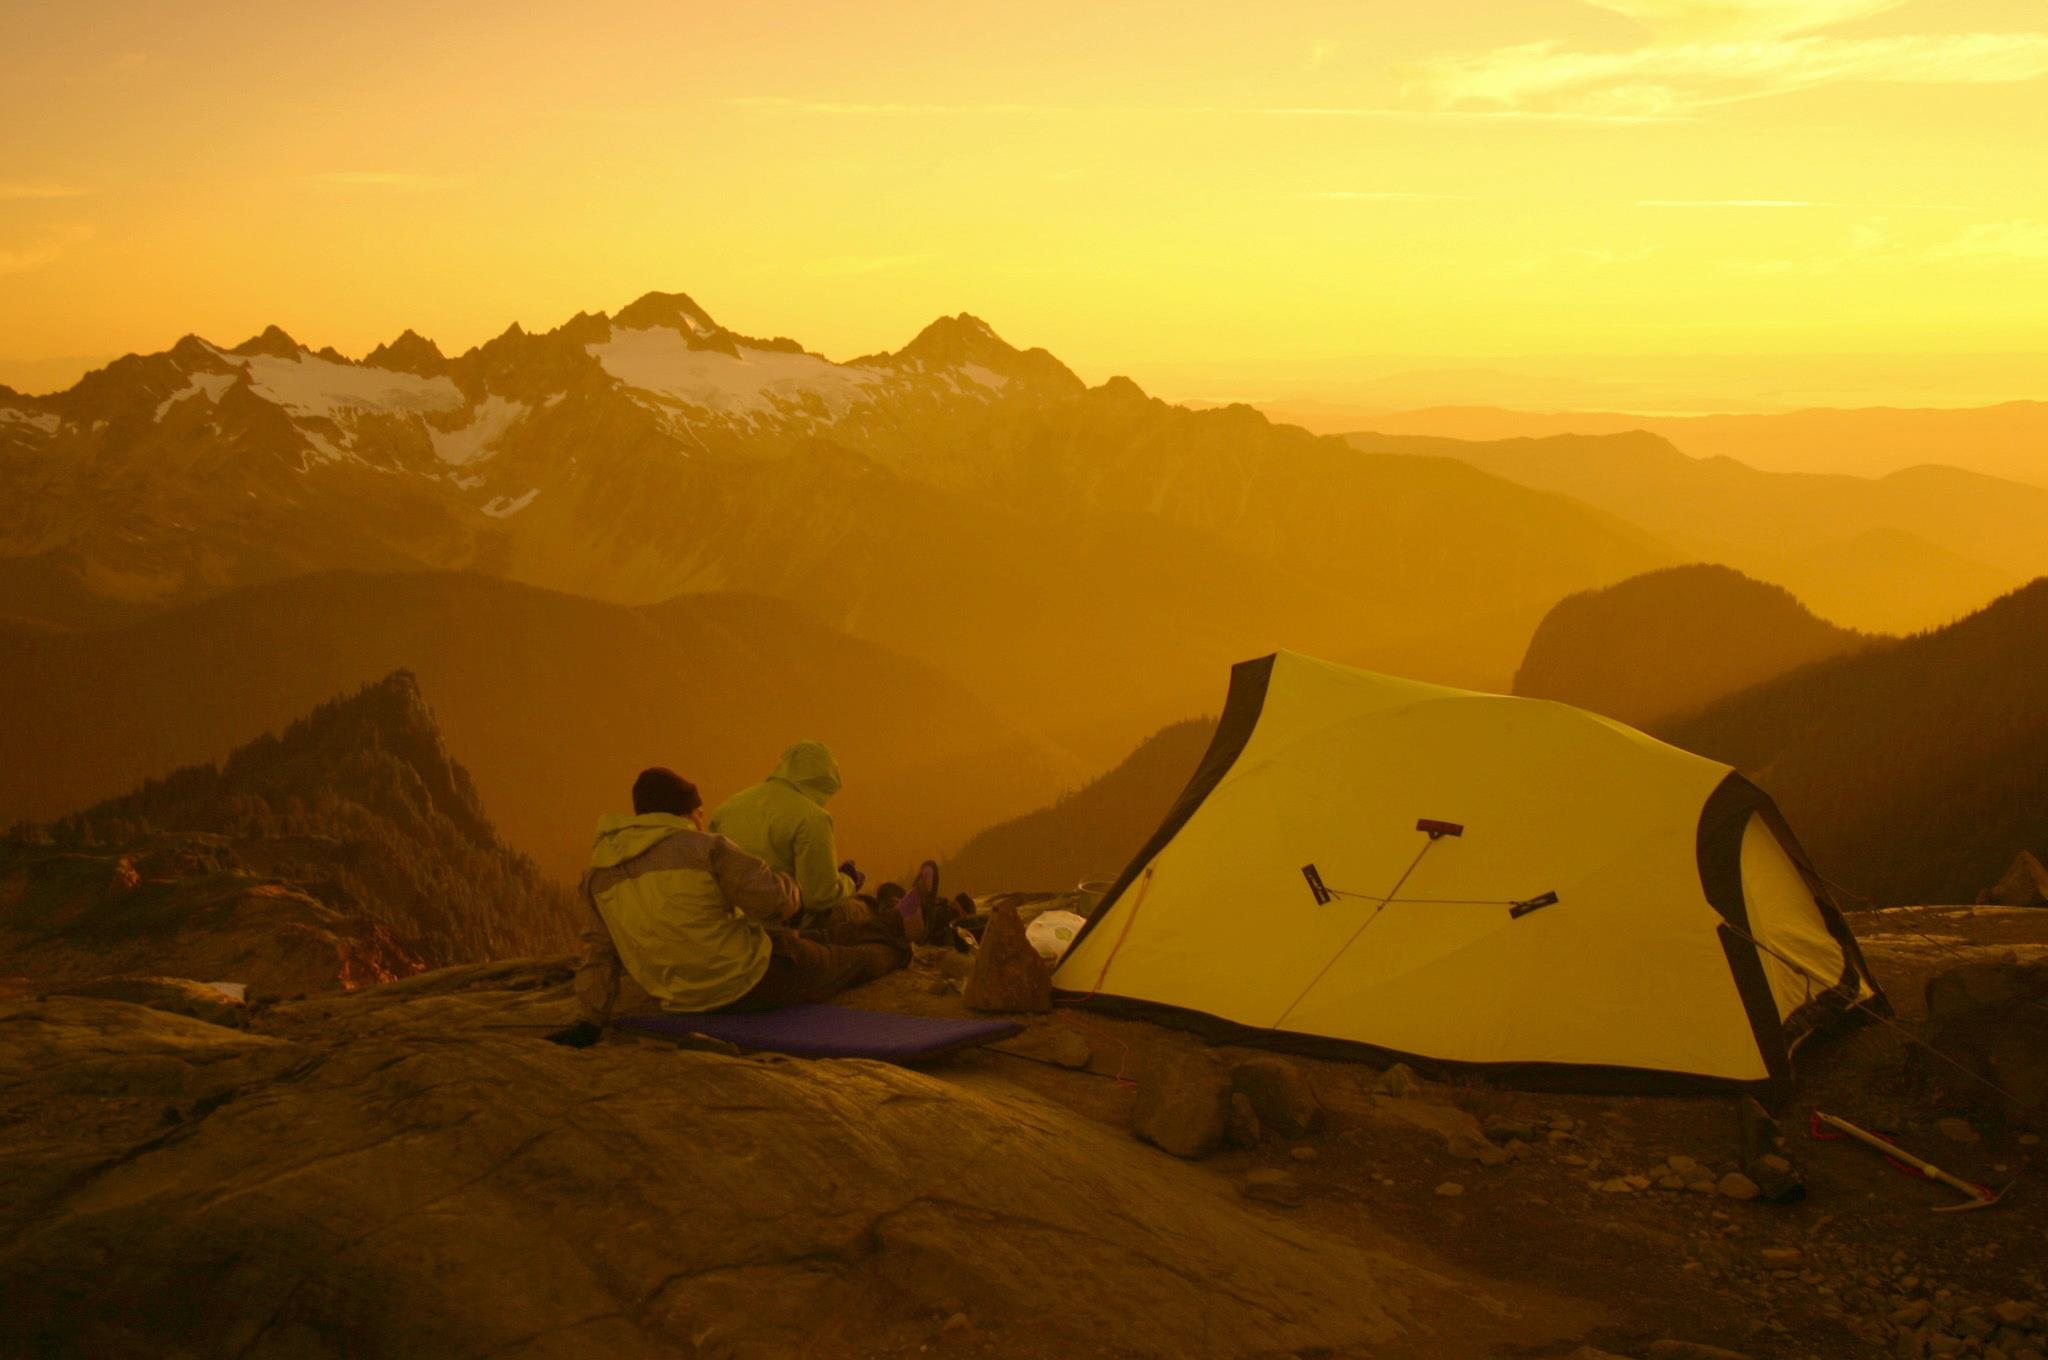 Watching the sunset from mount baker, Washington 2010